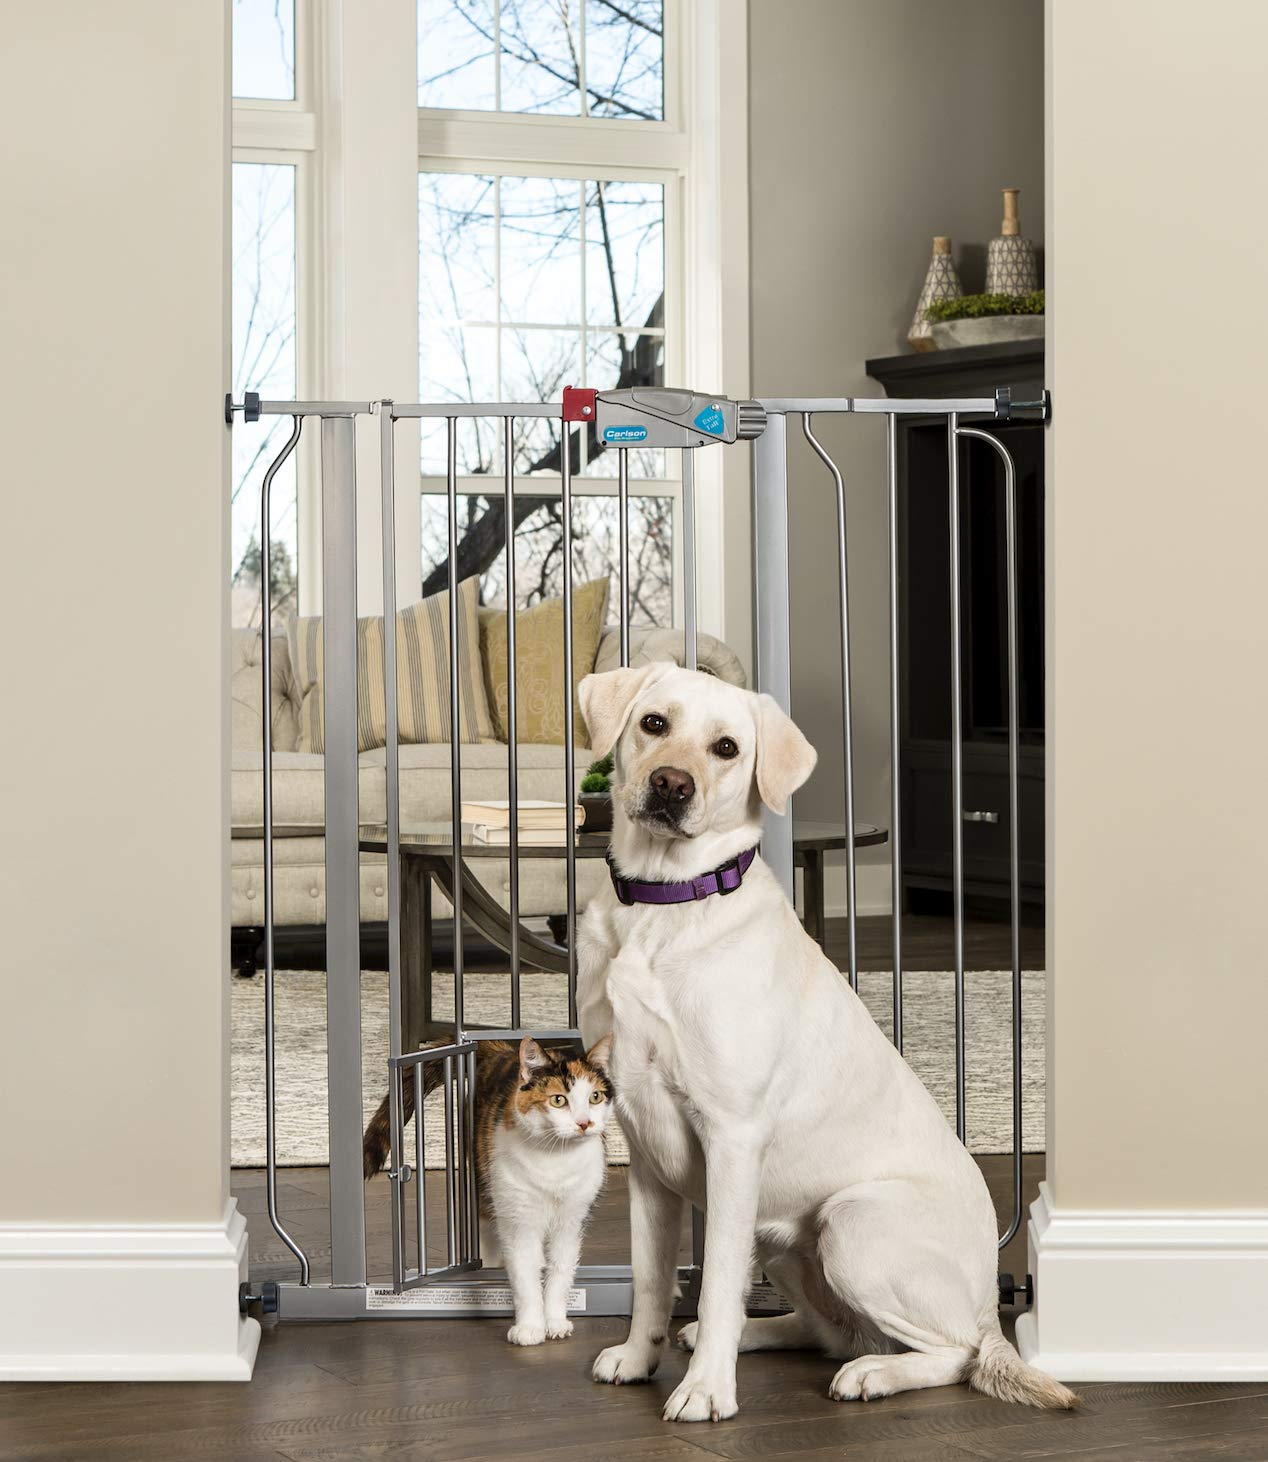 Carlson Extra Tall Walk Through Pet Gate with Small Pet Door, Includes 4-Inch Extension Kit, 4 Pack Pressure Mount Kit and 4 Pack Wall Mount Kit, Platinum